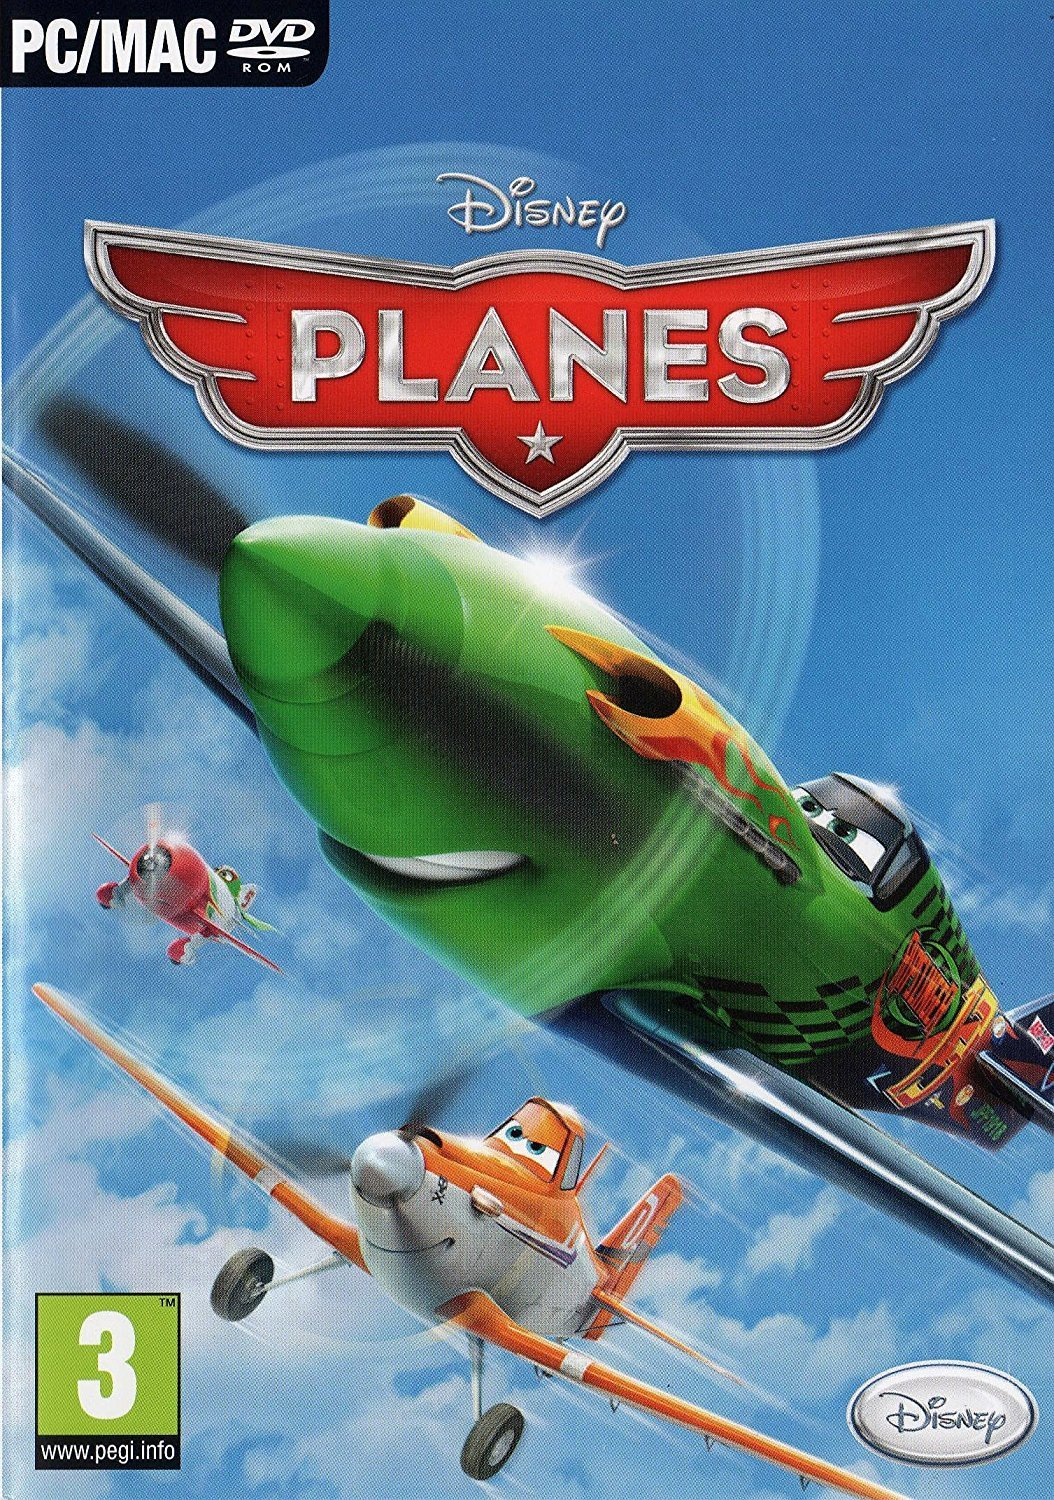 Disney's Planes: The Videogame for PC Games image